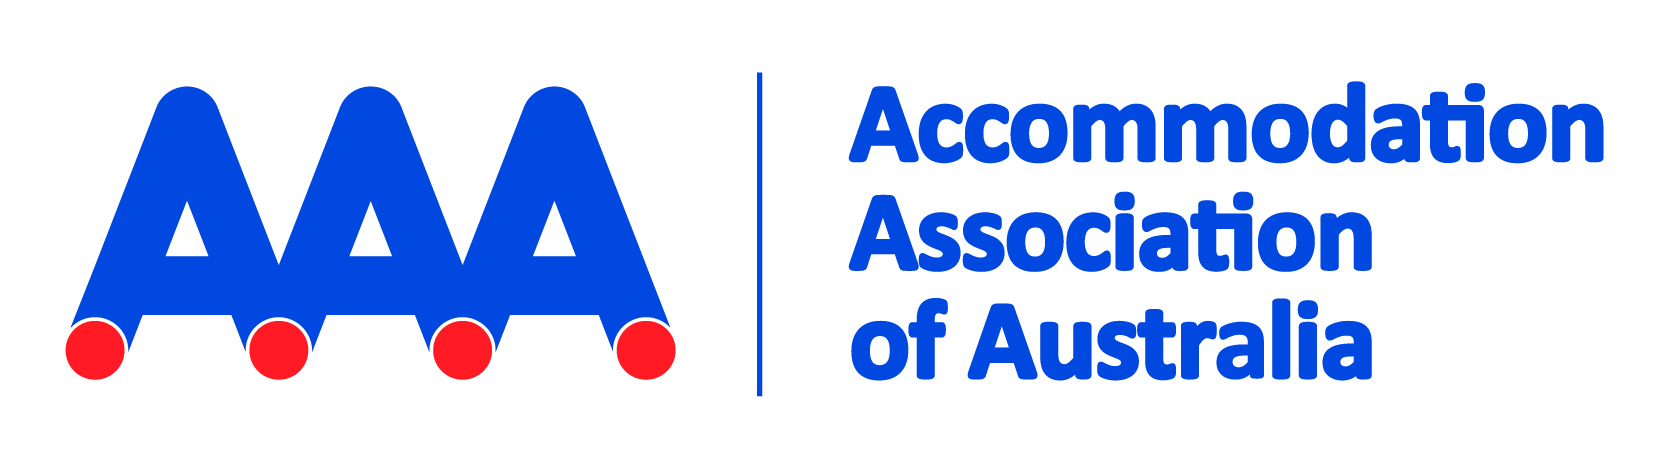 Accommodation Association of Australia